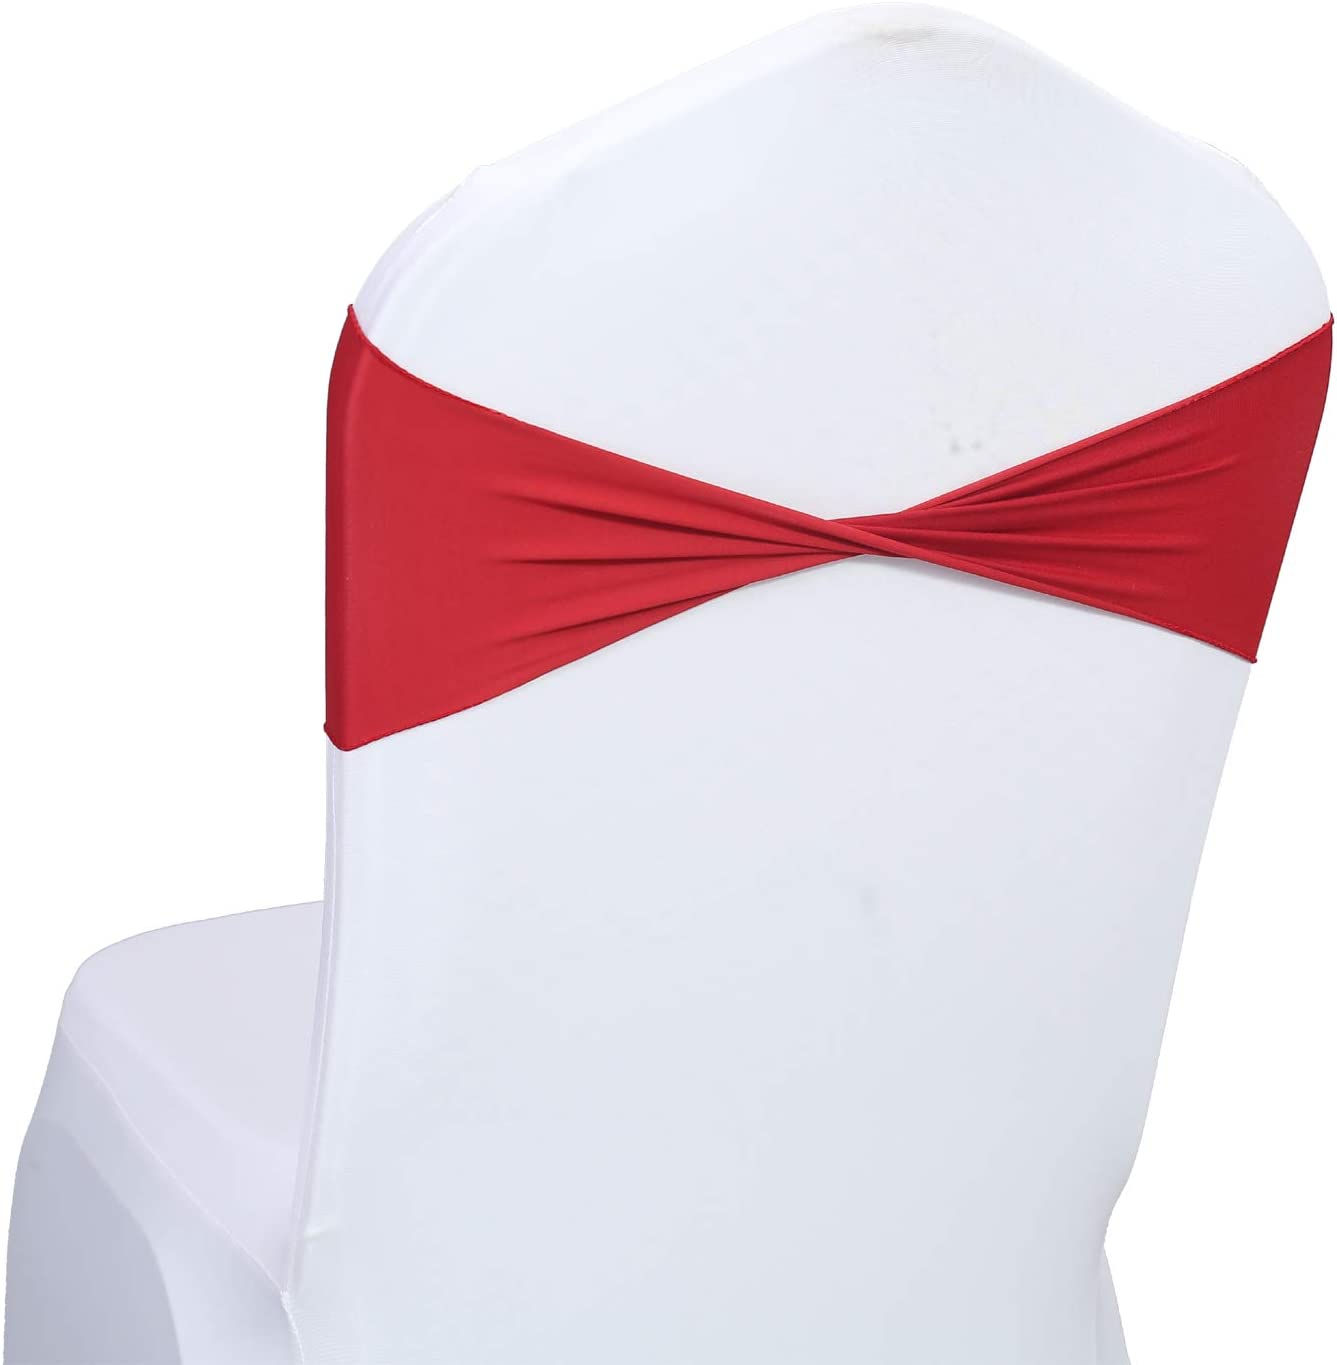 mds Pack of 10 Spandex Chair Sashes Bow sash Elastic Chair Bands Ties Without Buckle for Wedding and Events Decoration Lycra Slider Sashes Bow - Apple Red